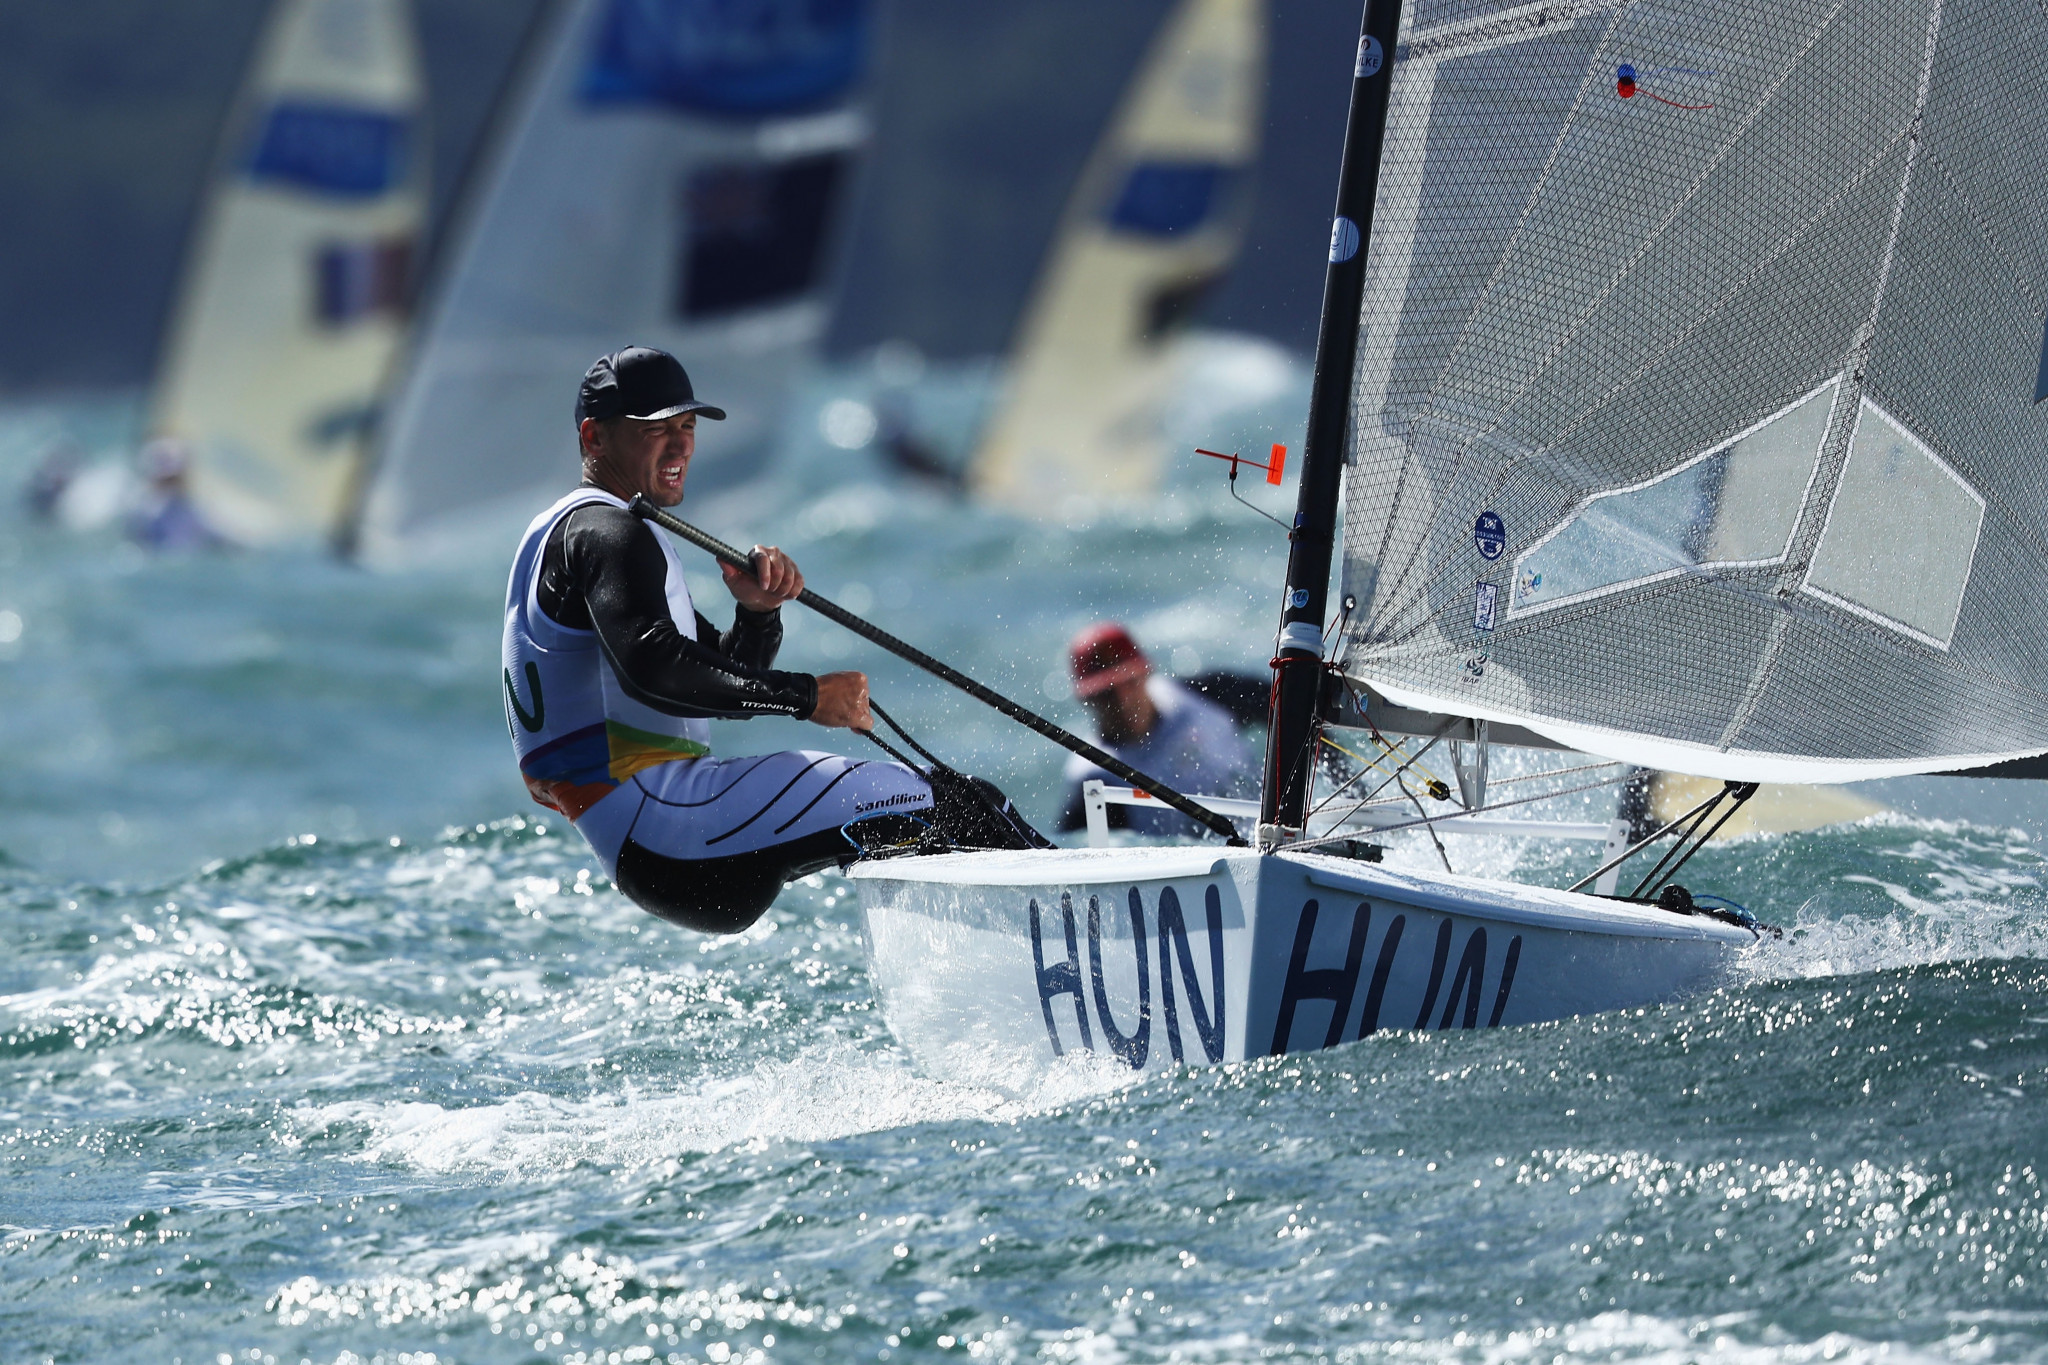 Berecz takes pole position with one day left at Finn European Championships